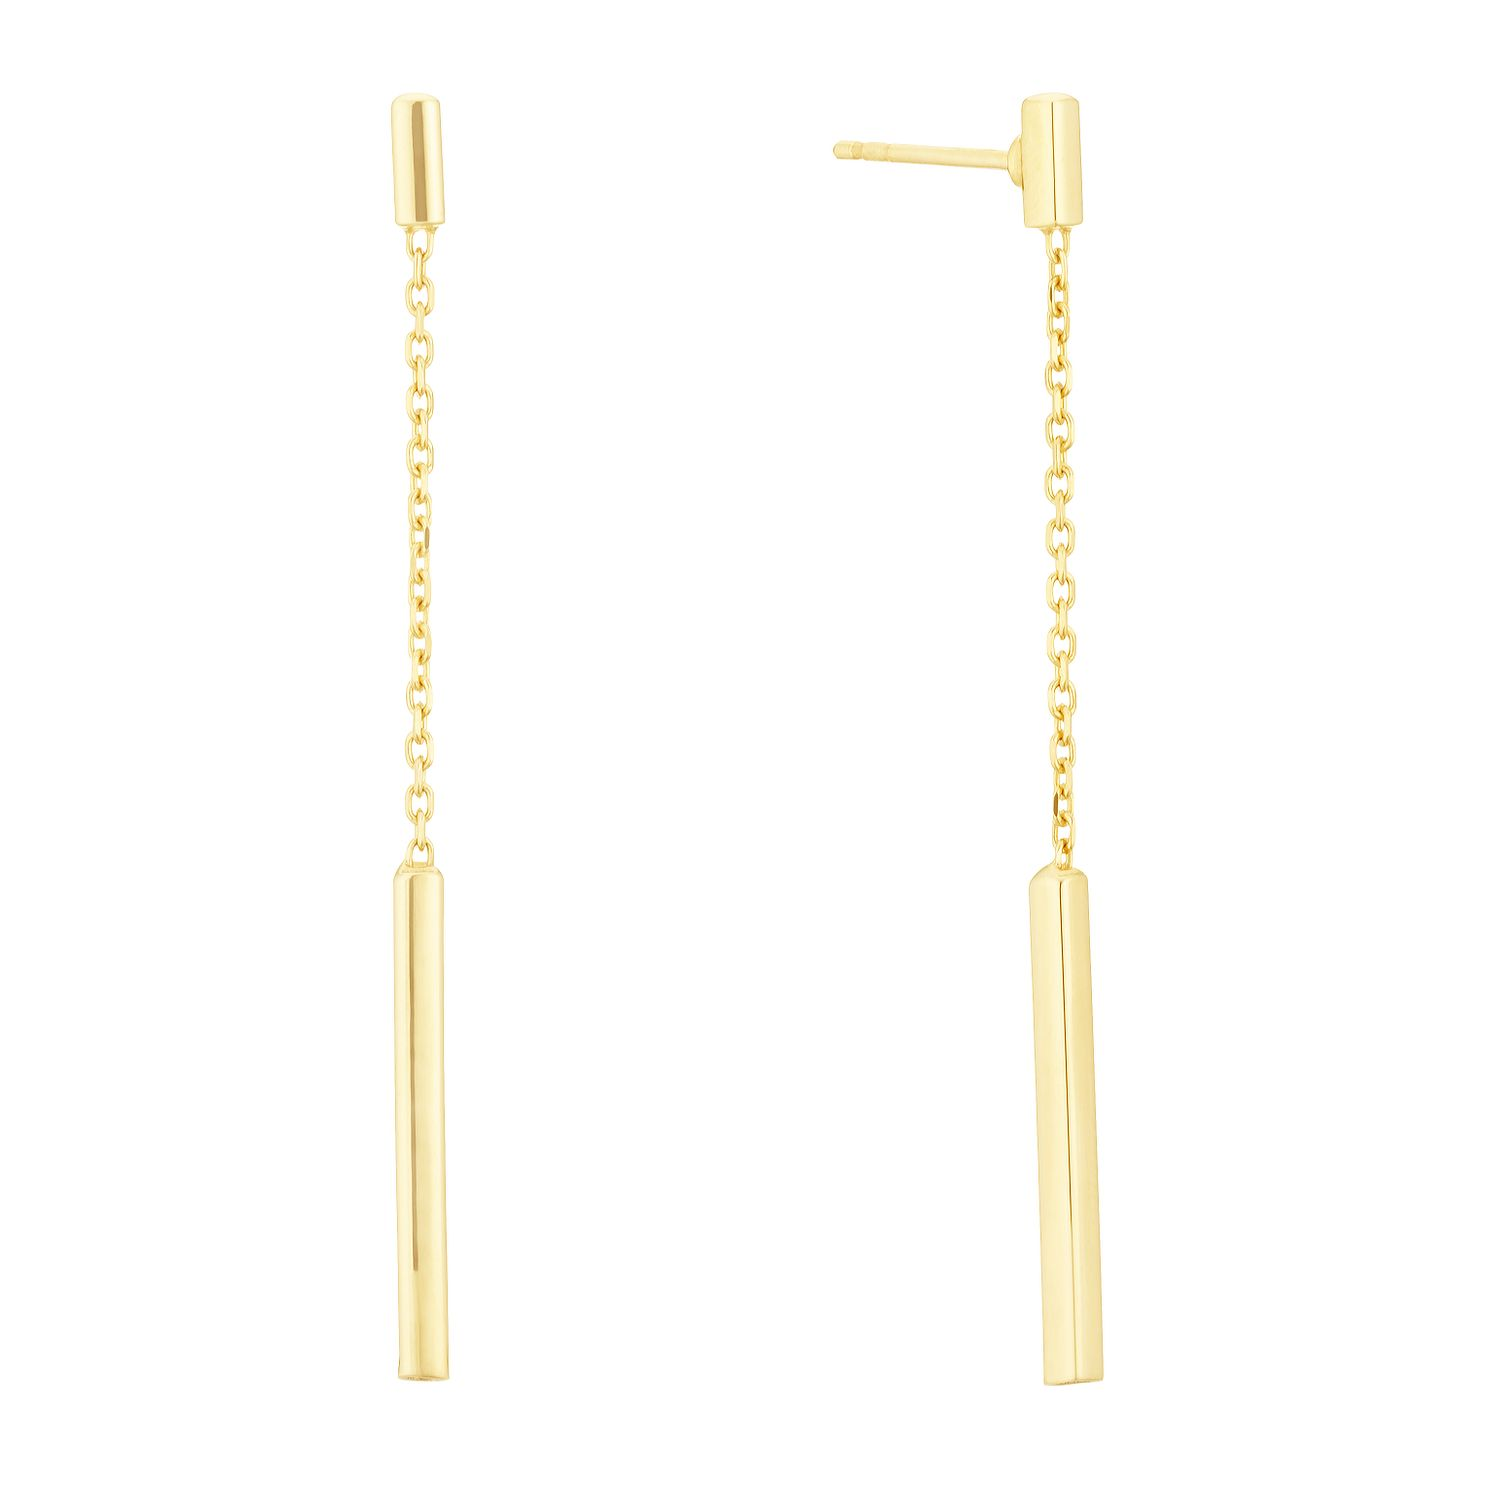 9ct Yellow Gold Chain & Bar Drop Earrings - Product number 3141748